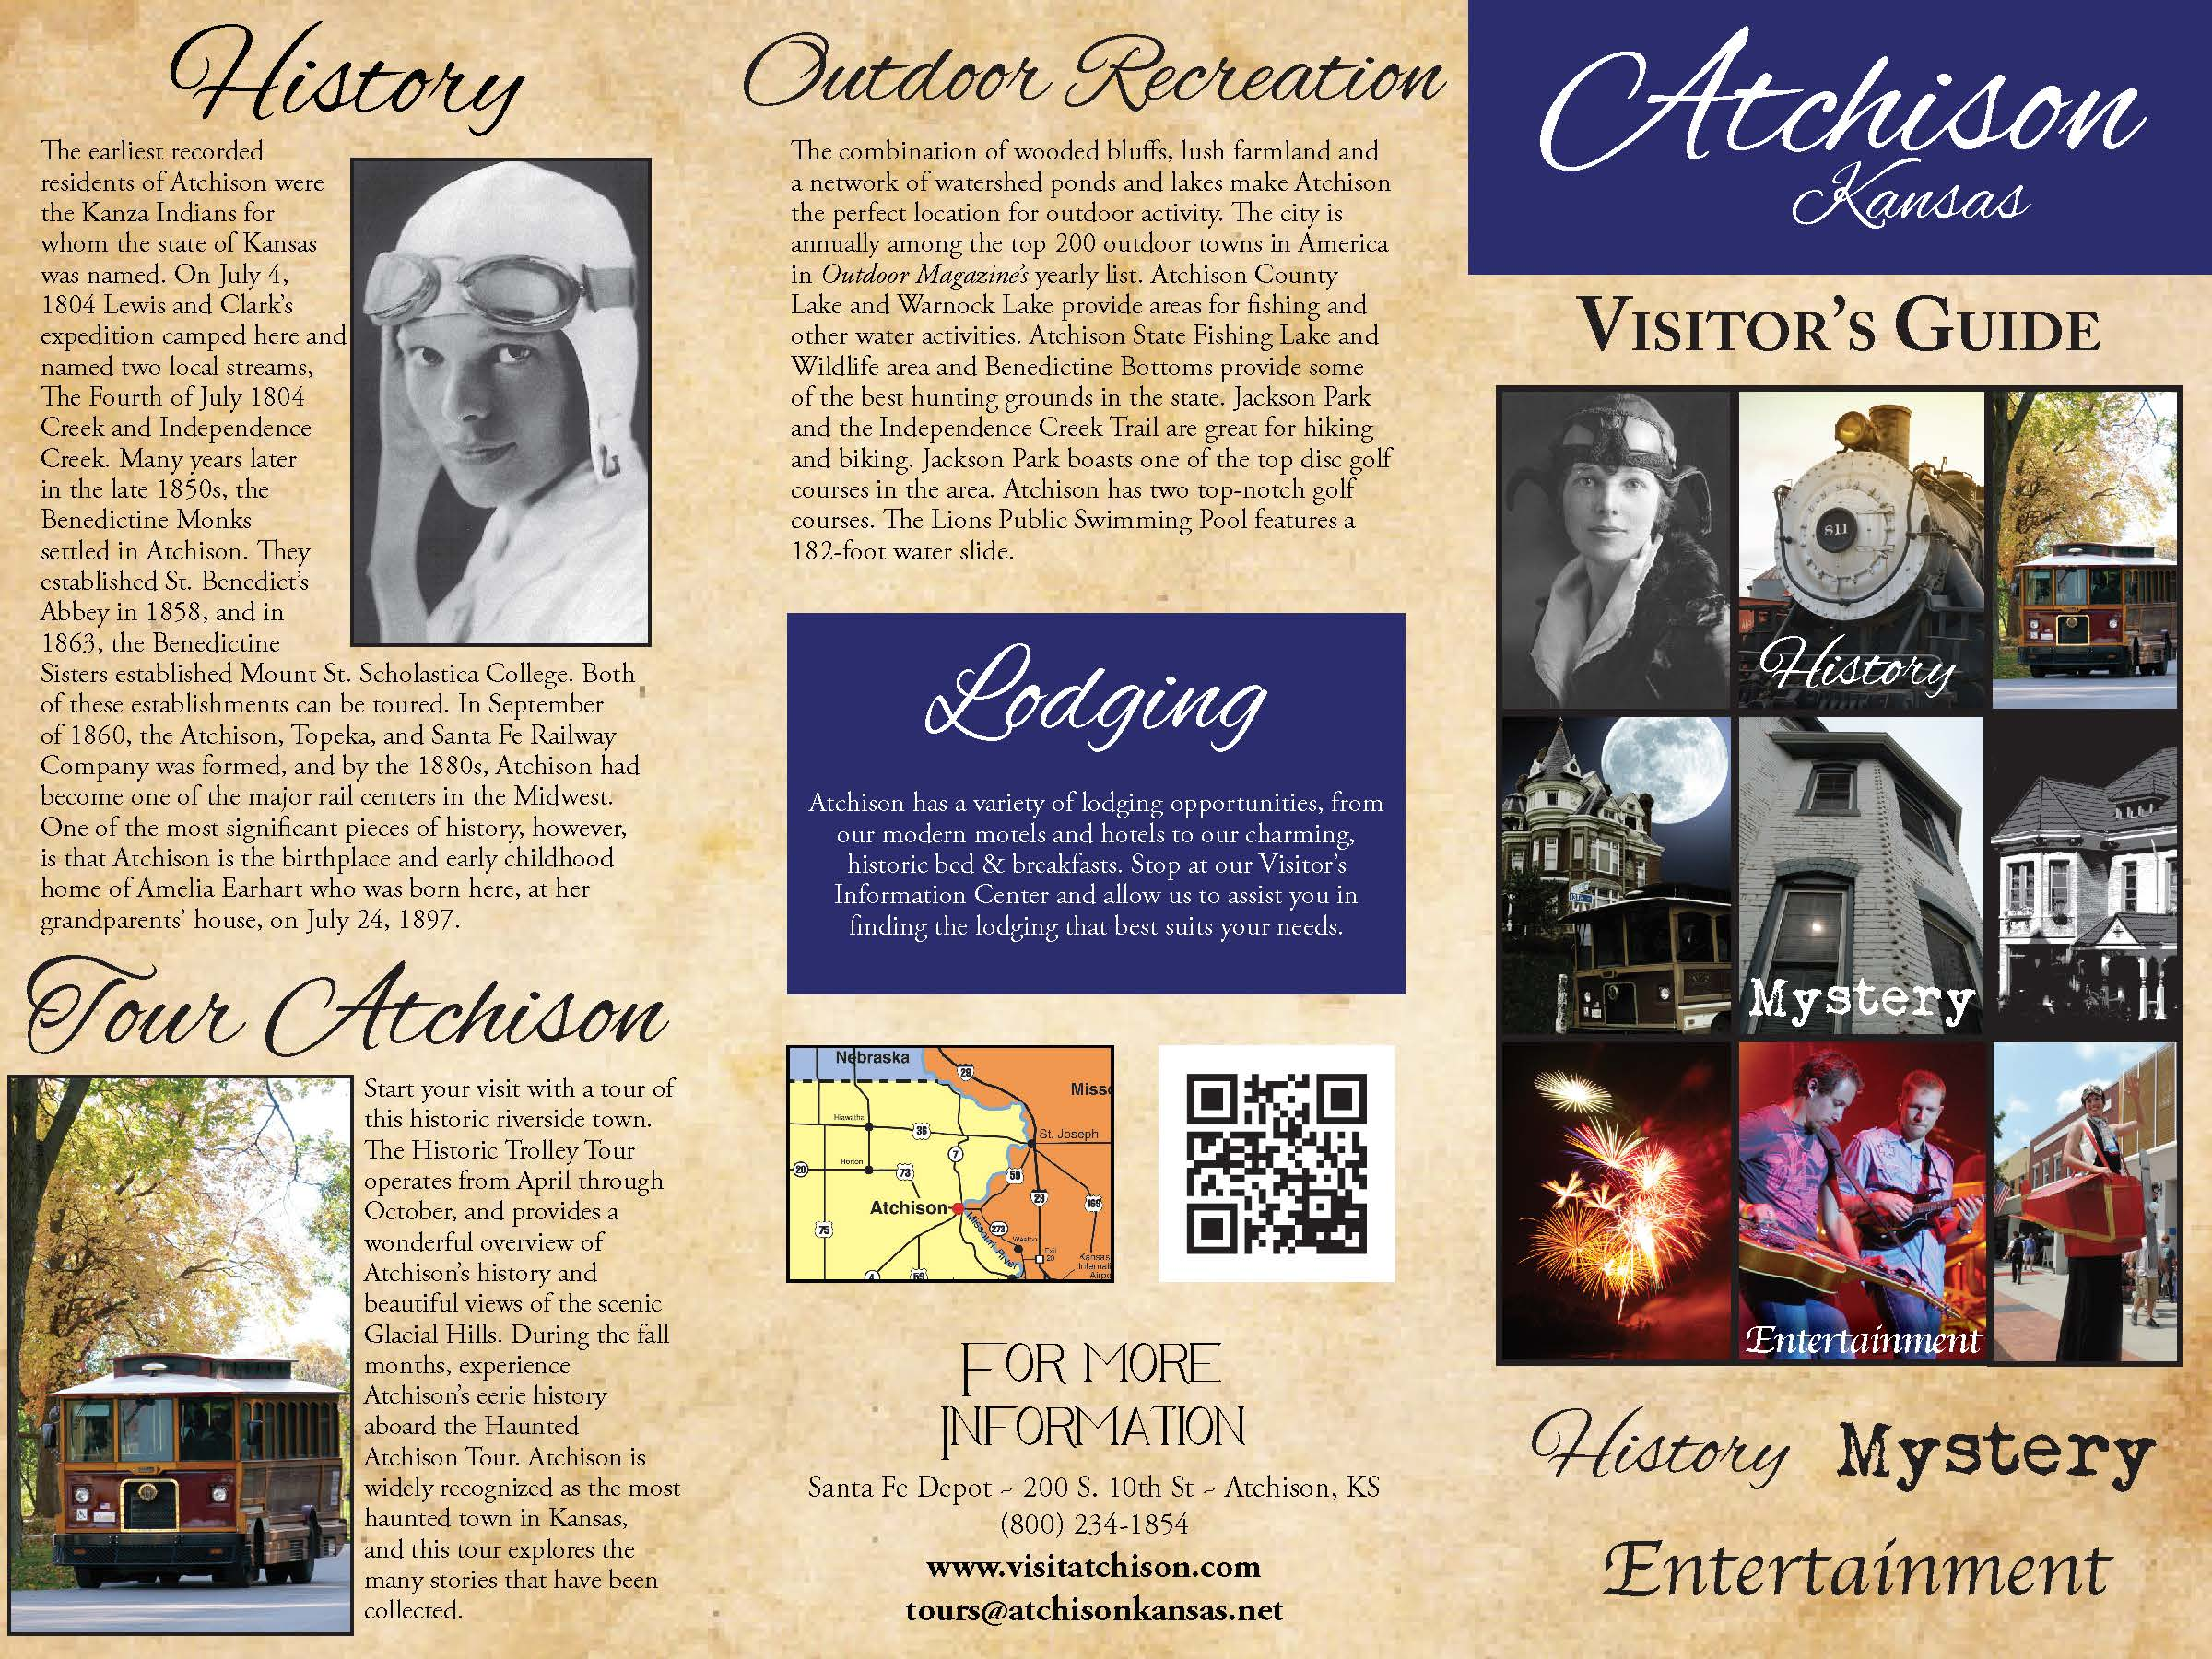 VisitorGuide_Page_1